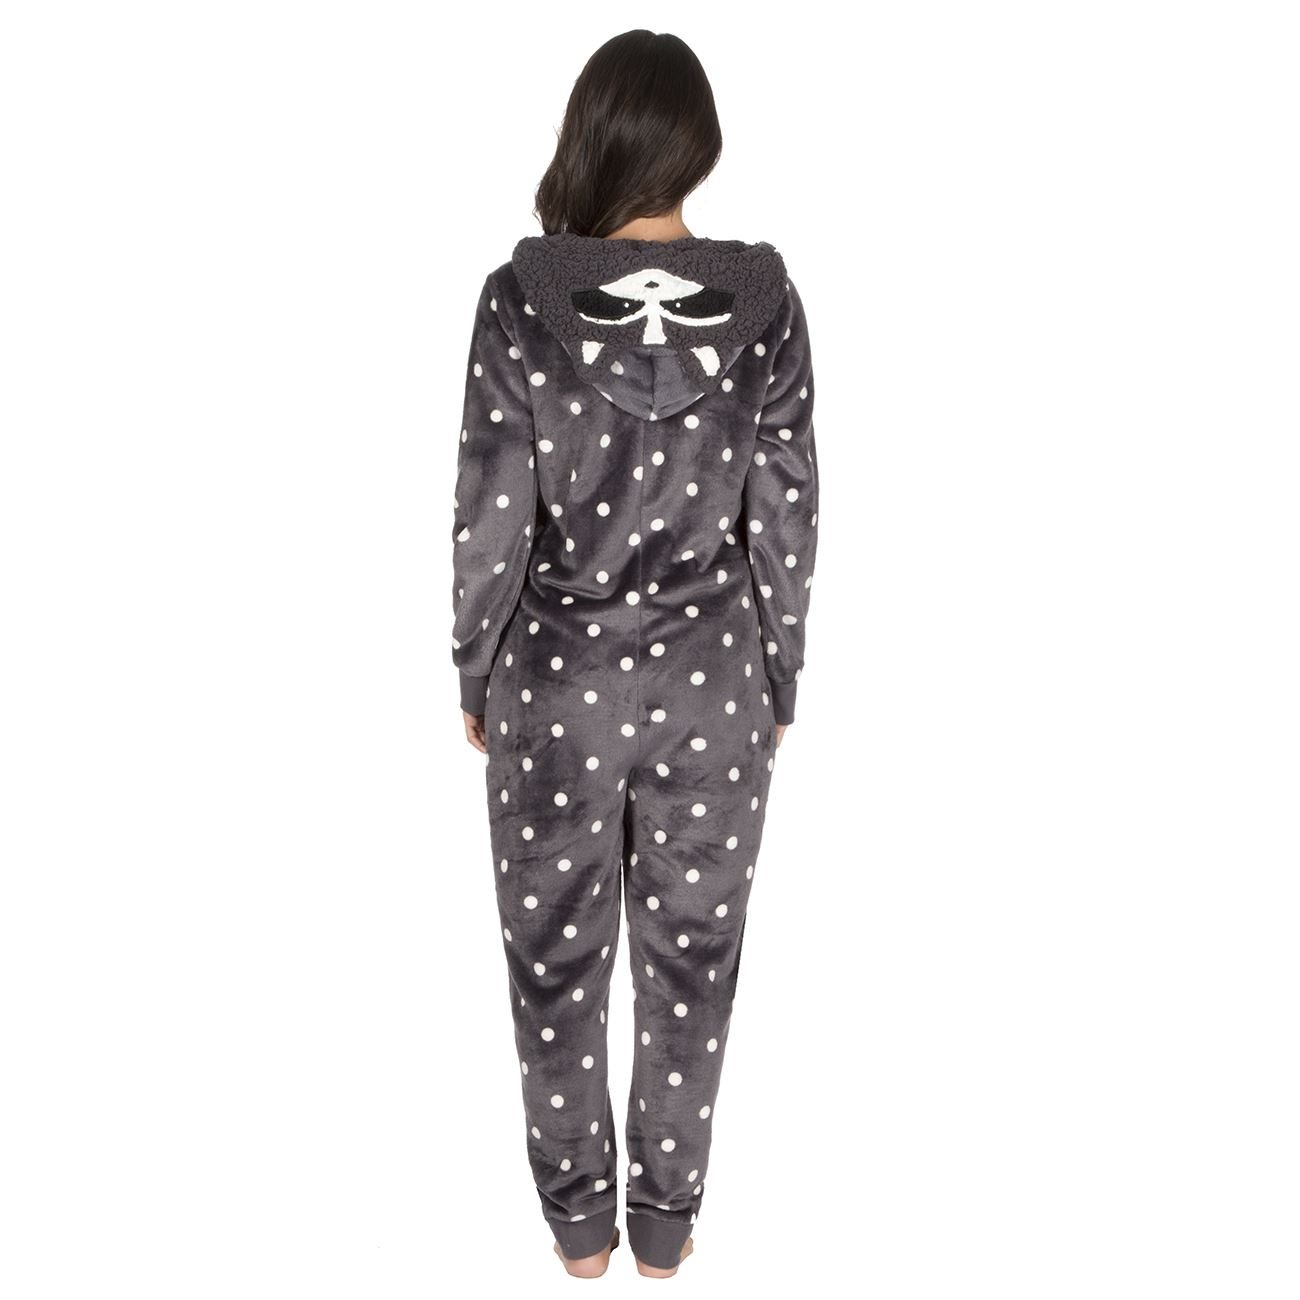 Ladies-Womens-Girls-Fleece-All-In-One-Pyjamas-Outfit-Jumpsuit-Costume-Size-6-18 thumbnail 33